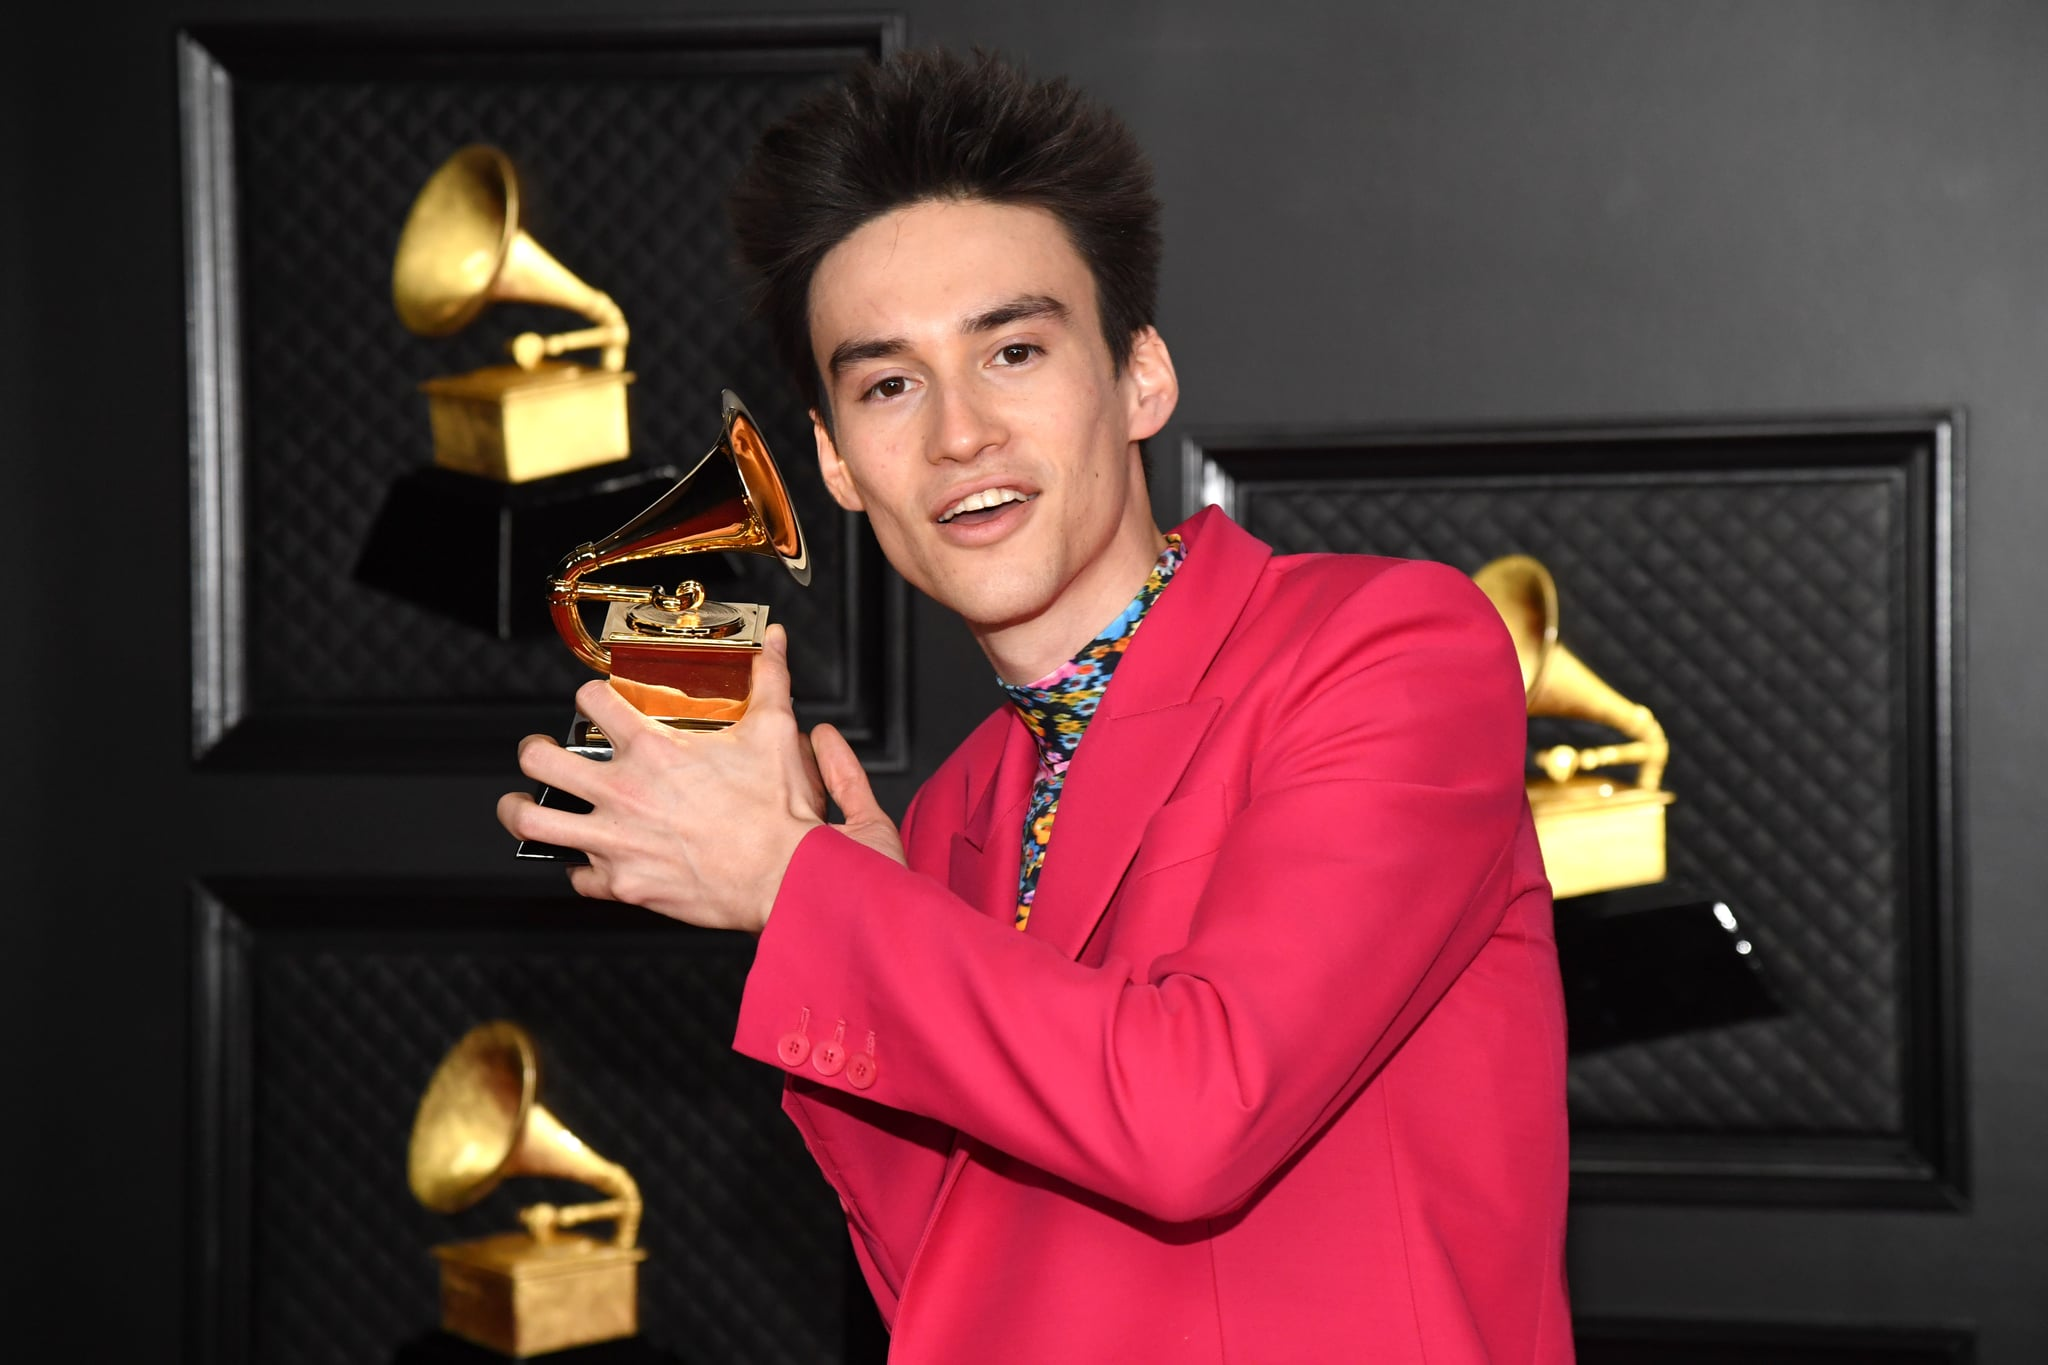 LOS ANGELES, CALIFORNIA - MARCH 14: Jacob Collier, winner of the Best Arrangement, Instruments and Vocals award for 'He Won't Hold You,' poses in the media room during the 63rd Annual GRAMMY Awards at Los Angeles Convention Center on March 14, 2021 in Los Angeles, California. (Photo by Kevin Mazur/Getty Images for The Recording Academy )